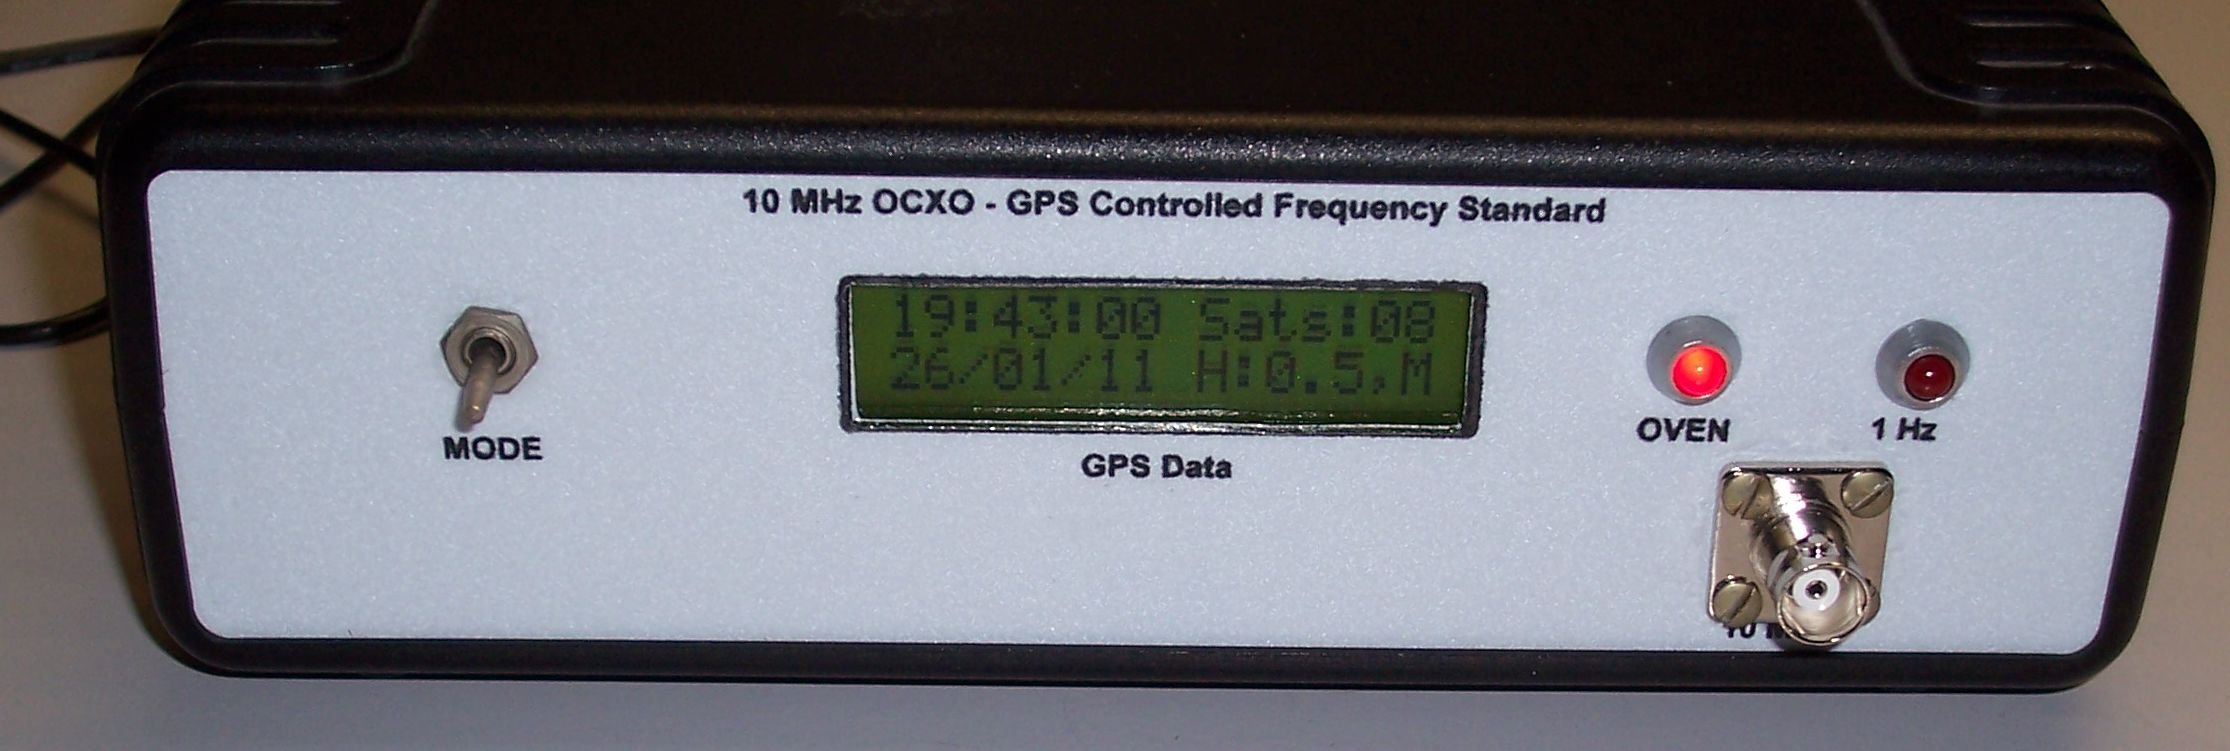 10 MHz GPS Frequency Standard – PAøRWE